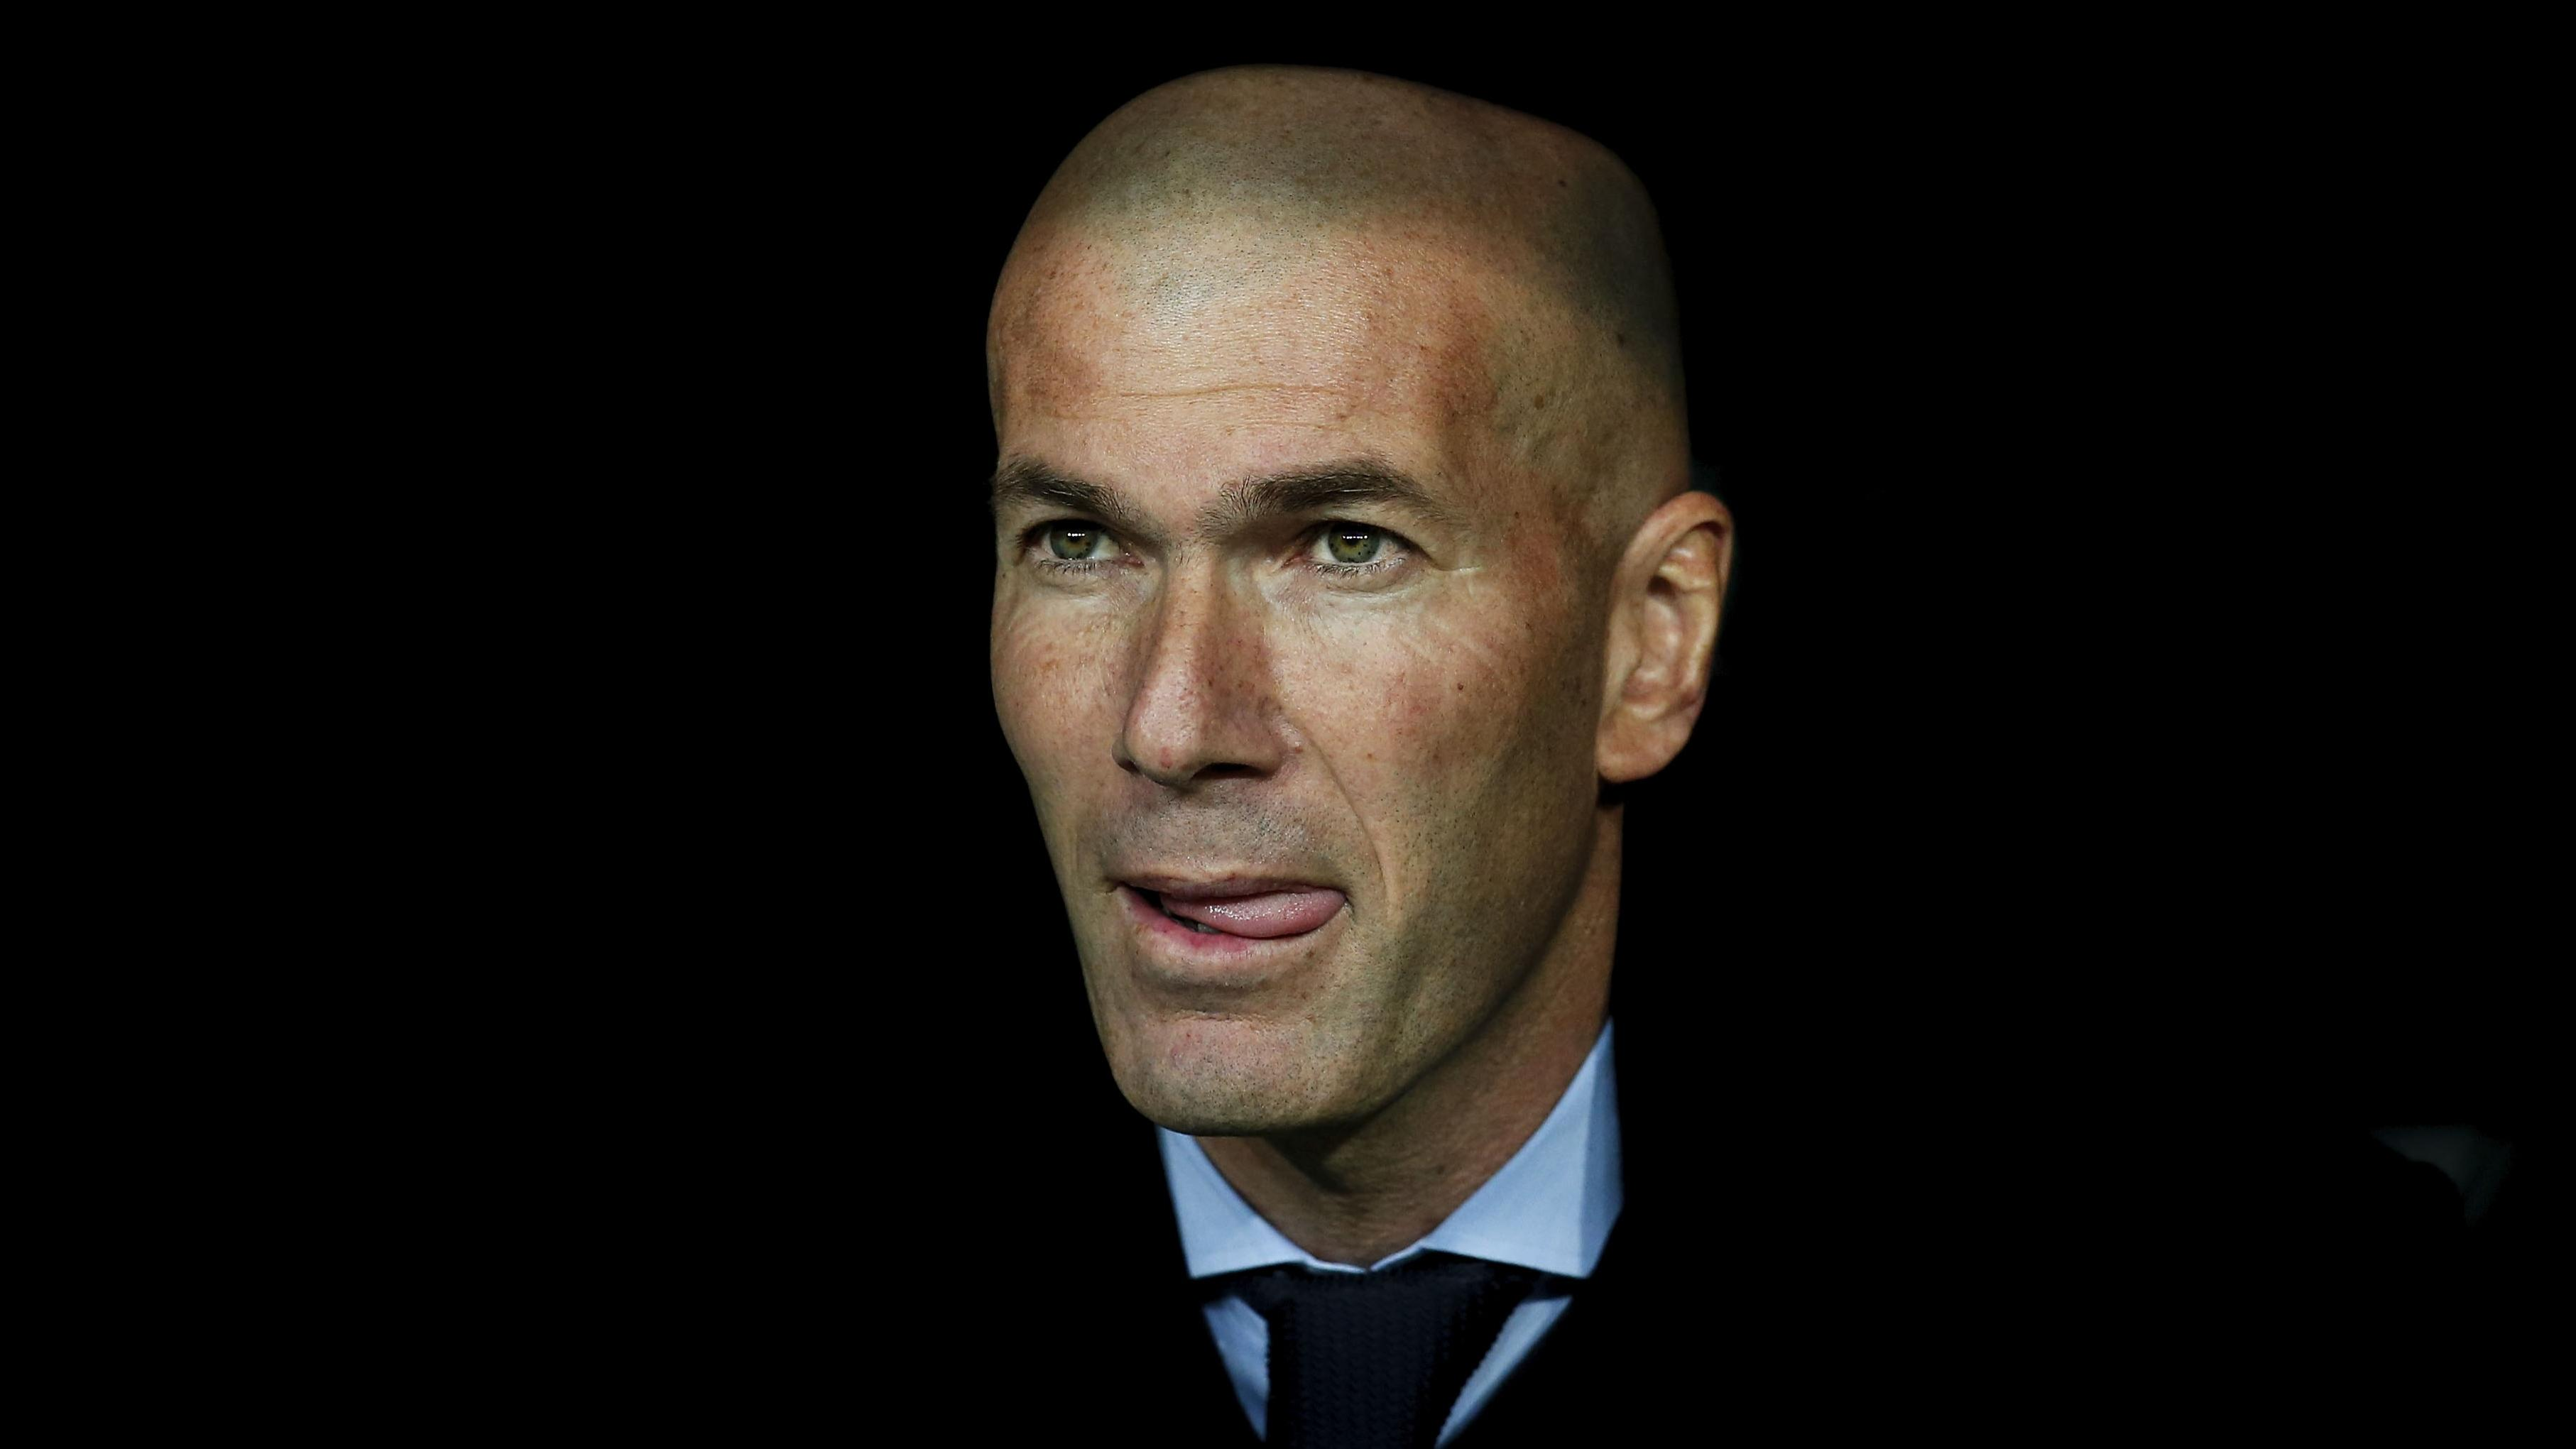 Watch: Zinedine Zidane loses his cool at Real Madrid press conference